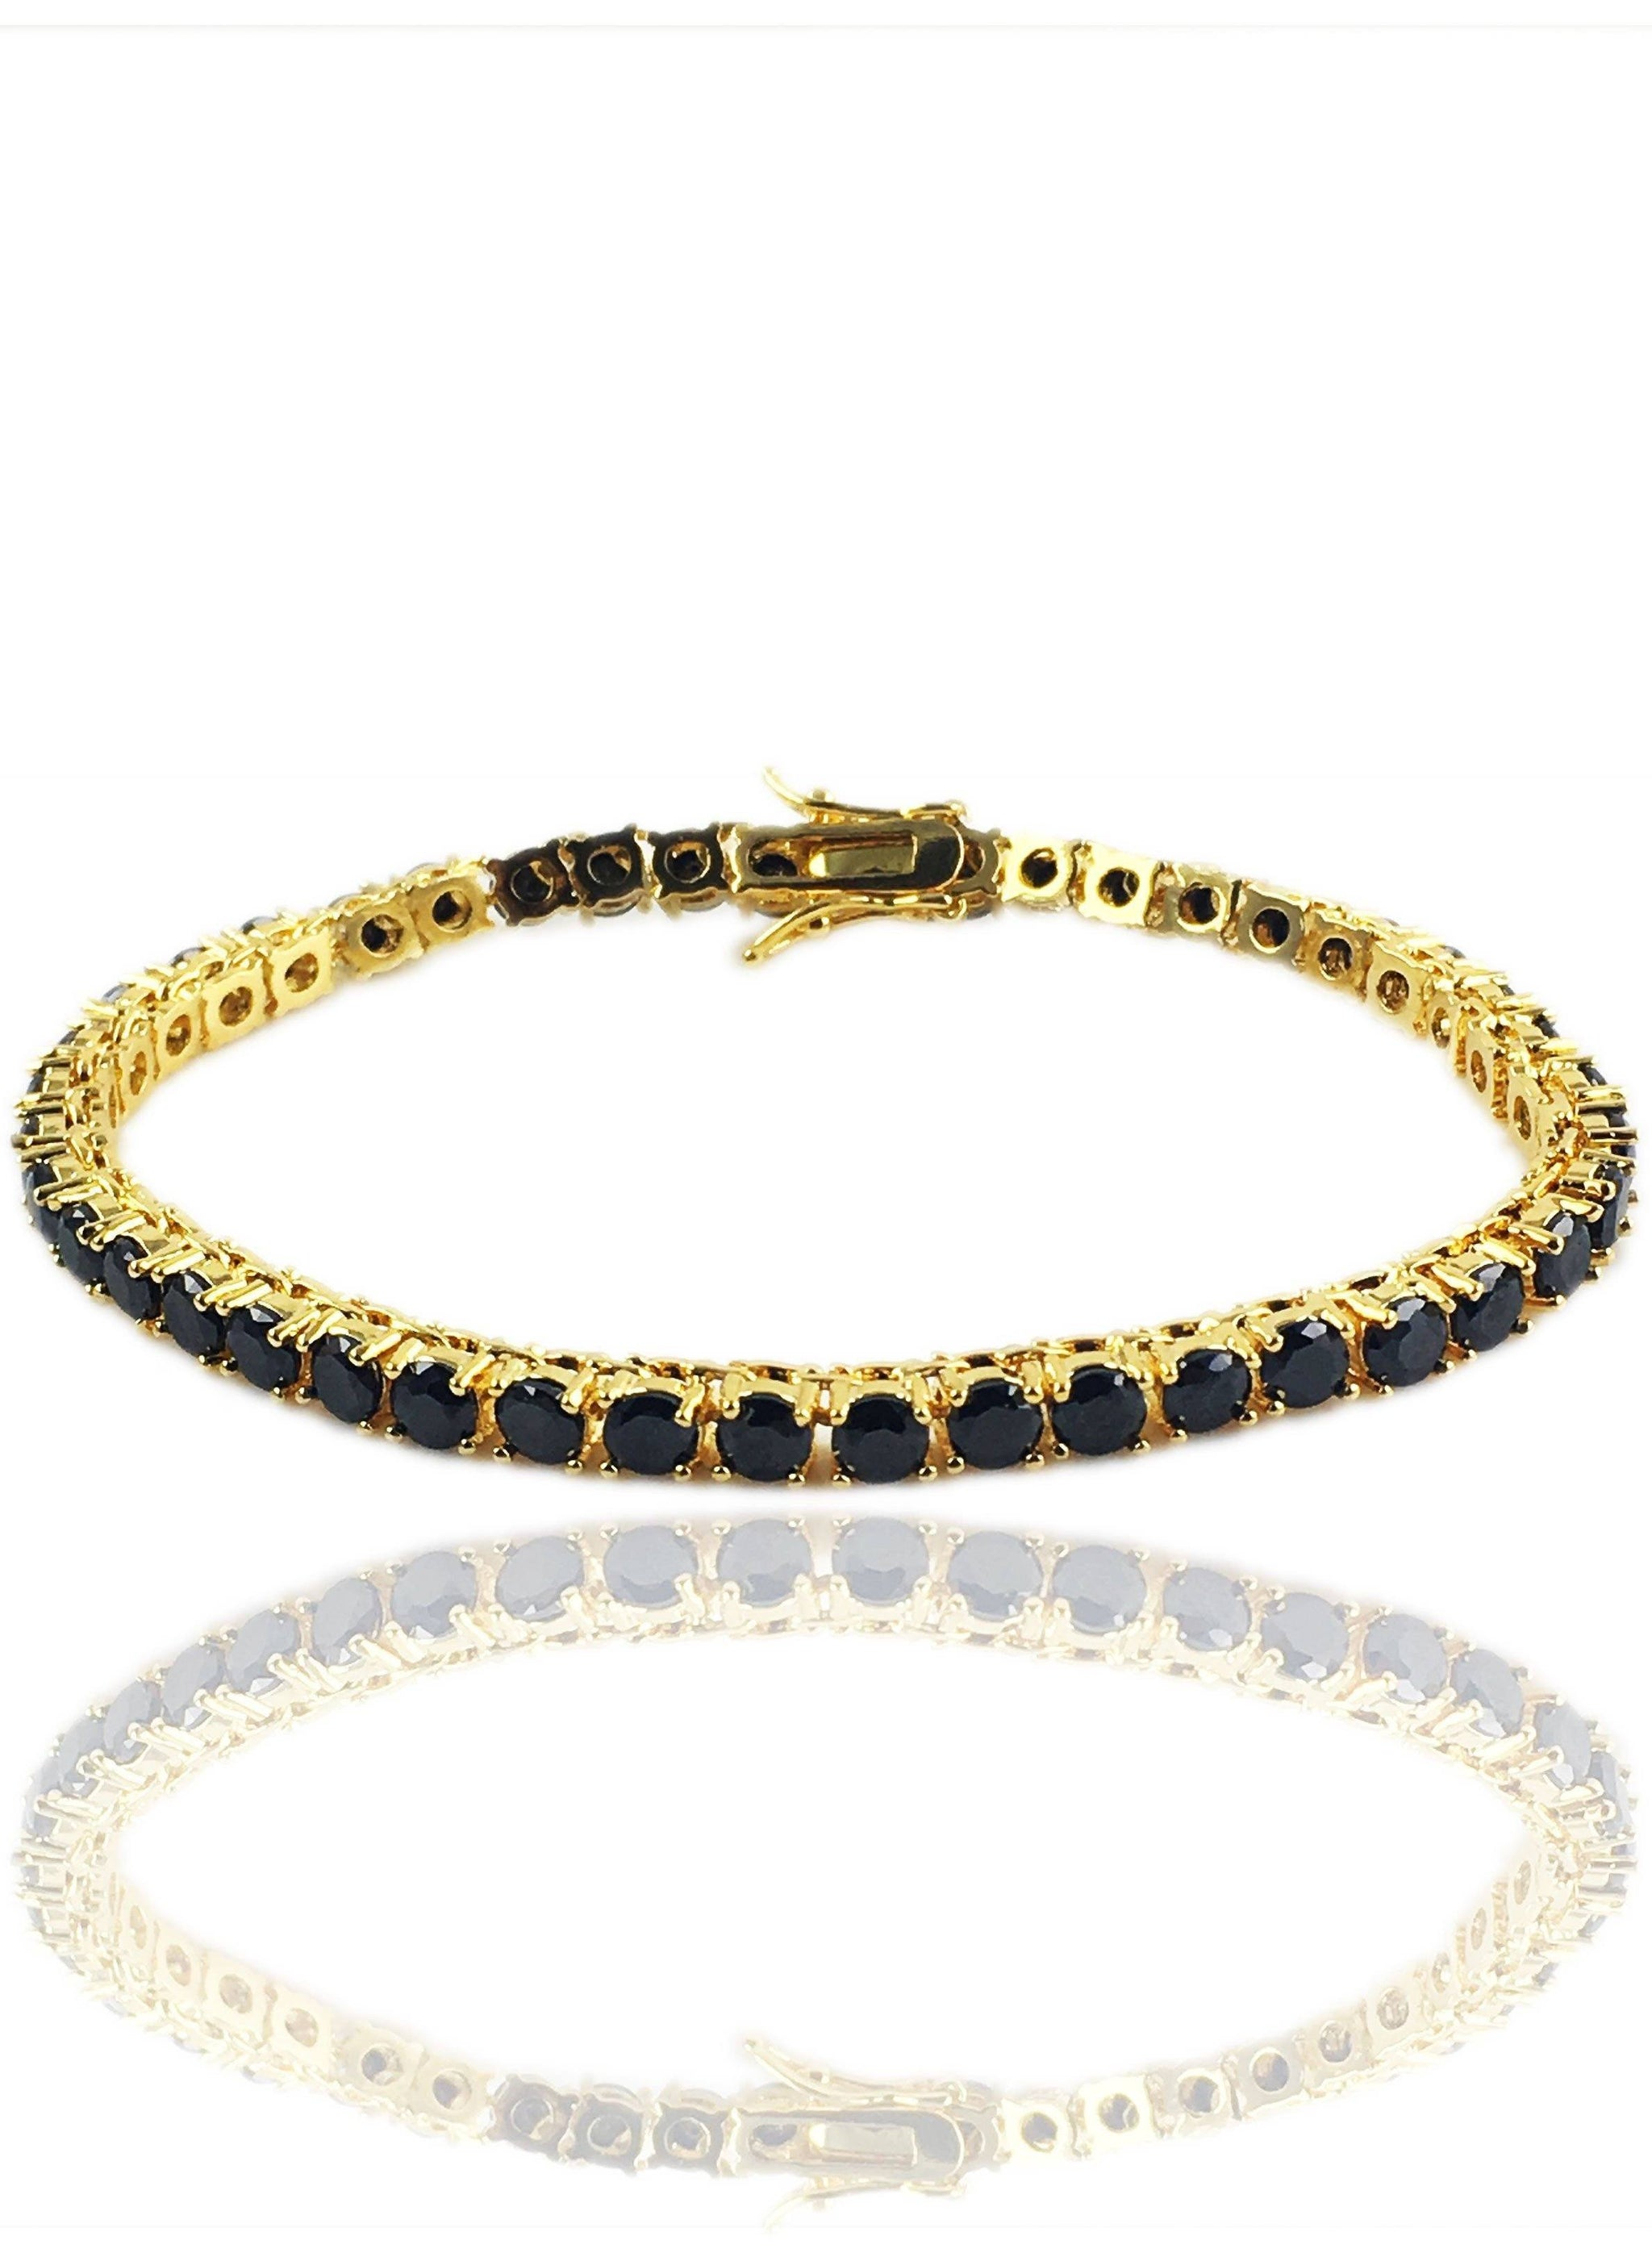 pav yurman pave bead jewelry david black bracelet diamond bracelets enlarged products spiritual